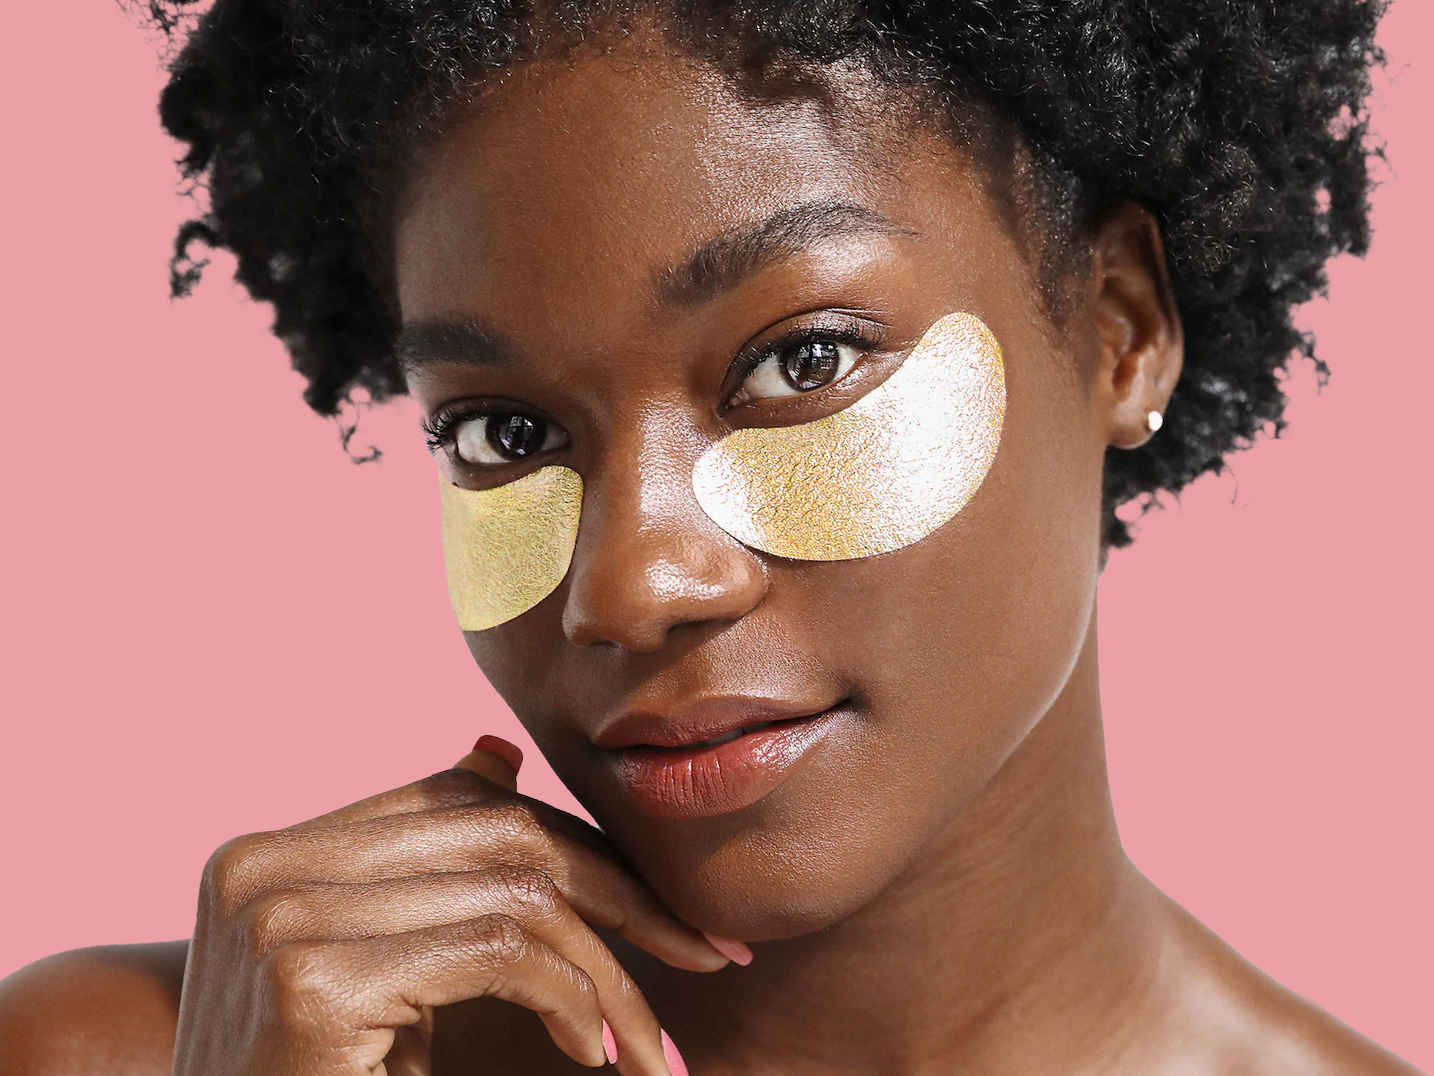 best-eye-masks: woman with gold eye masks under her eyes